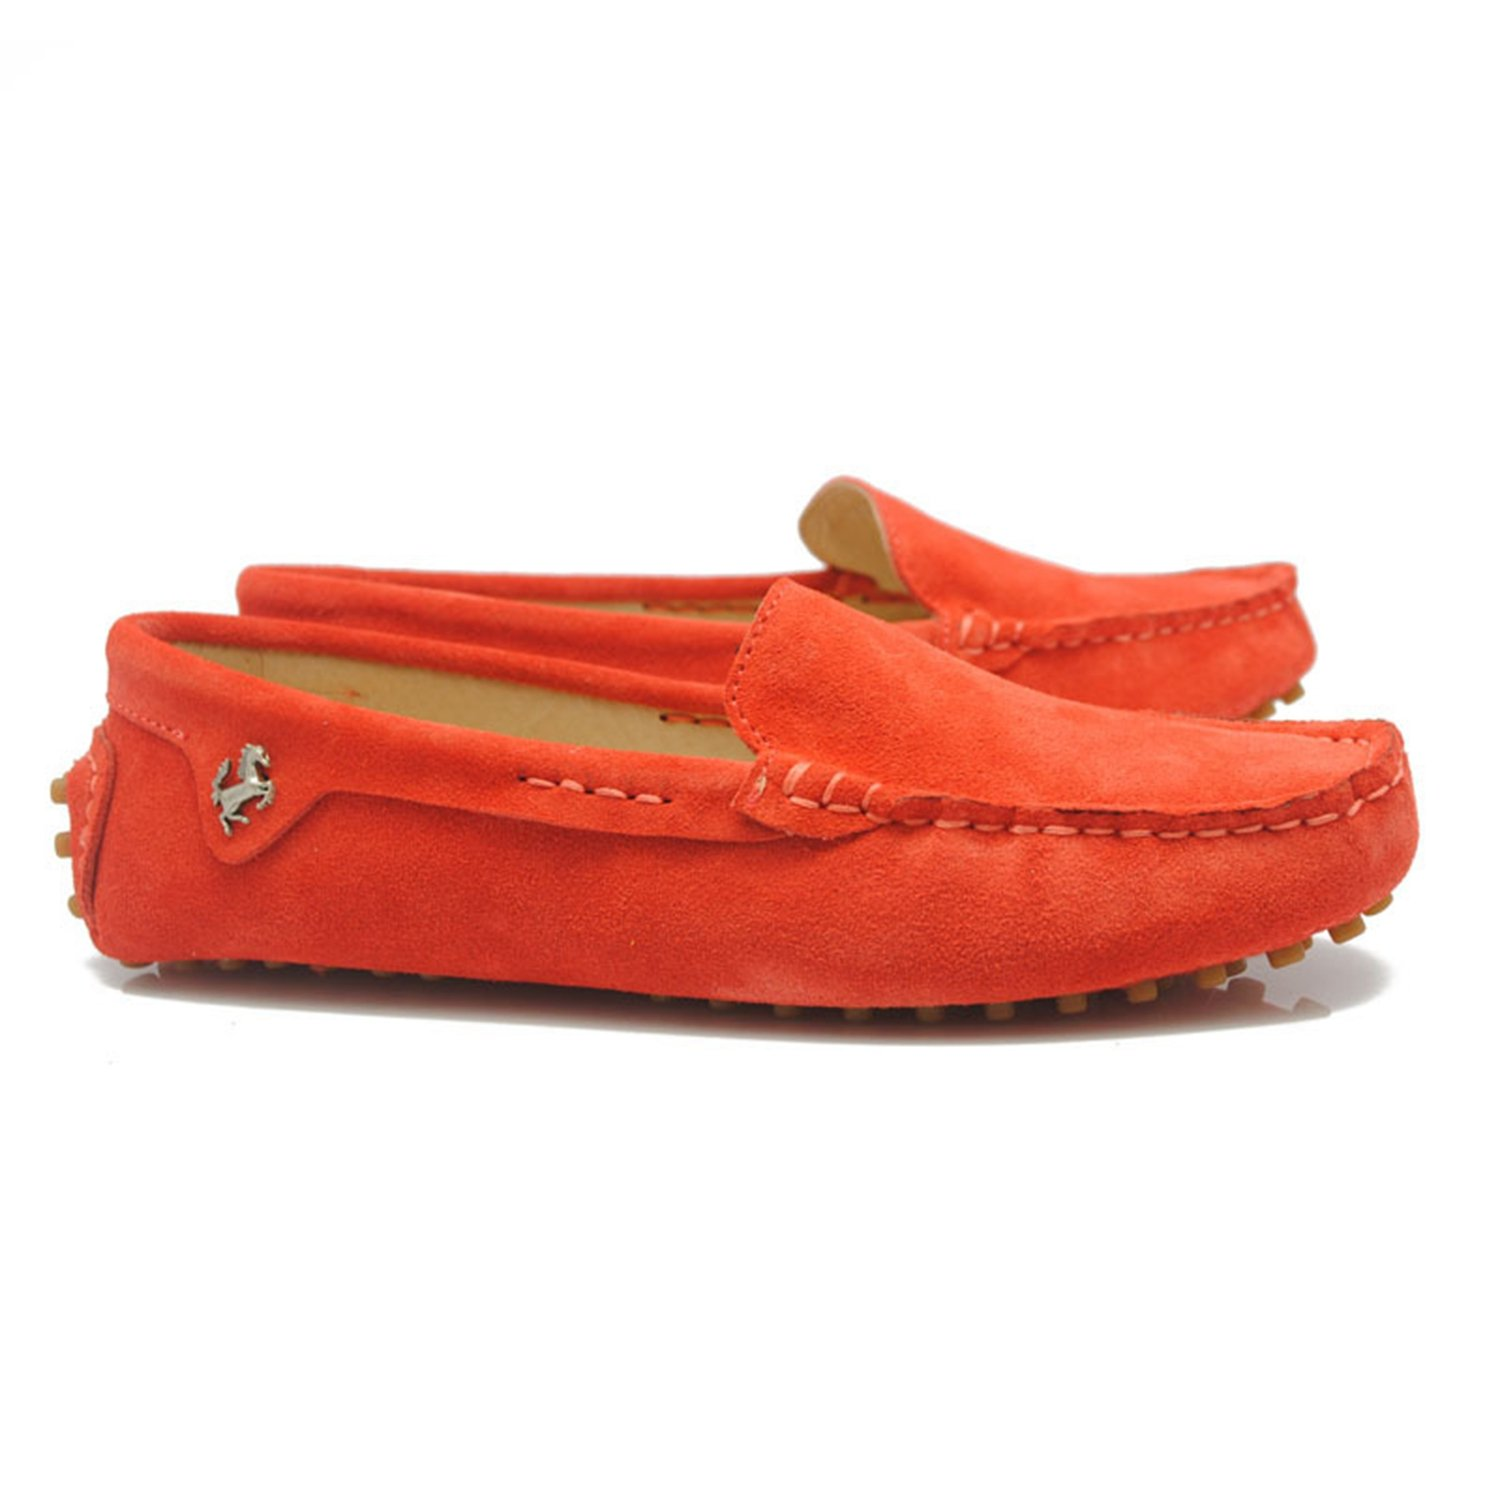 Minishion TYB9601 Women's Round Toe Loafers Boat Shoes Ballet Flats Loafers B072Q1DYMM 9 B(M) US|Dark Orange